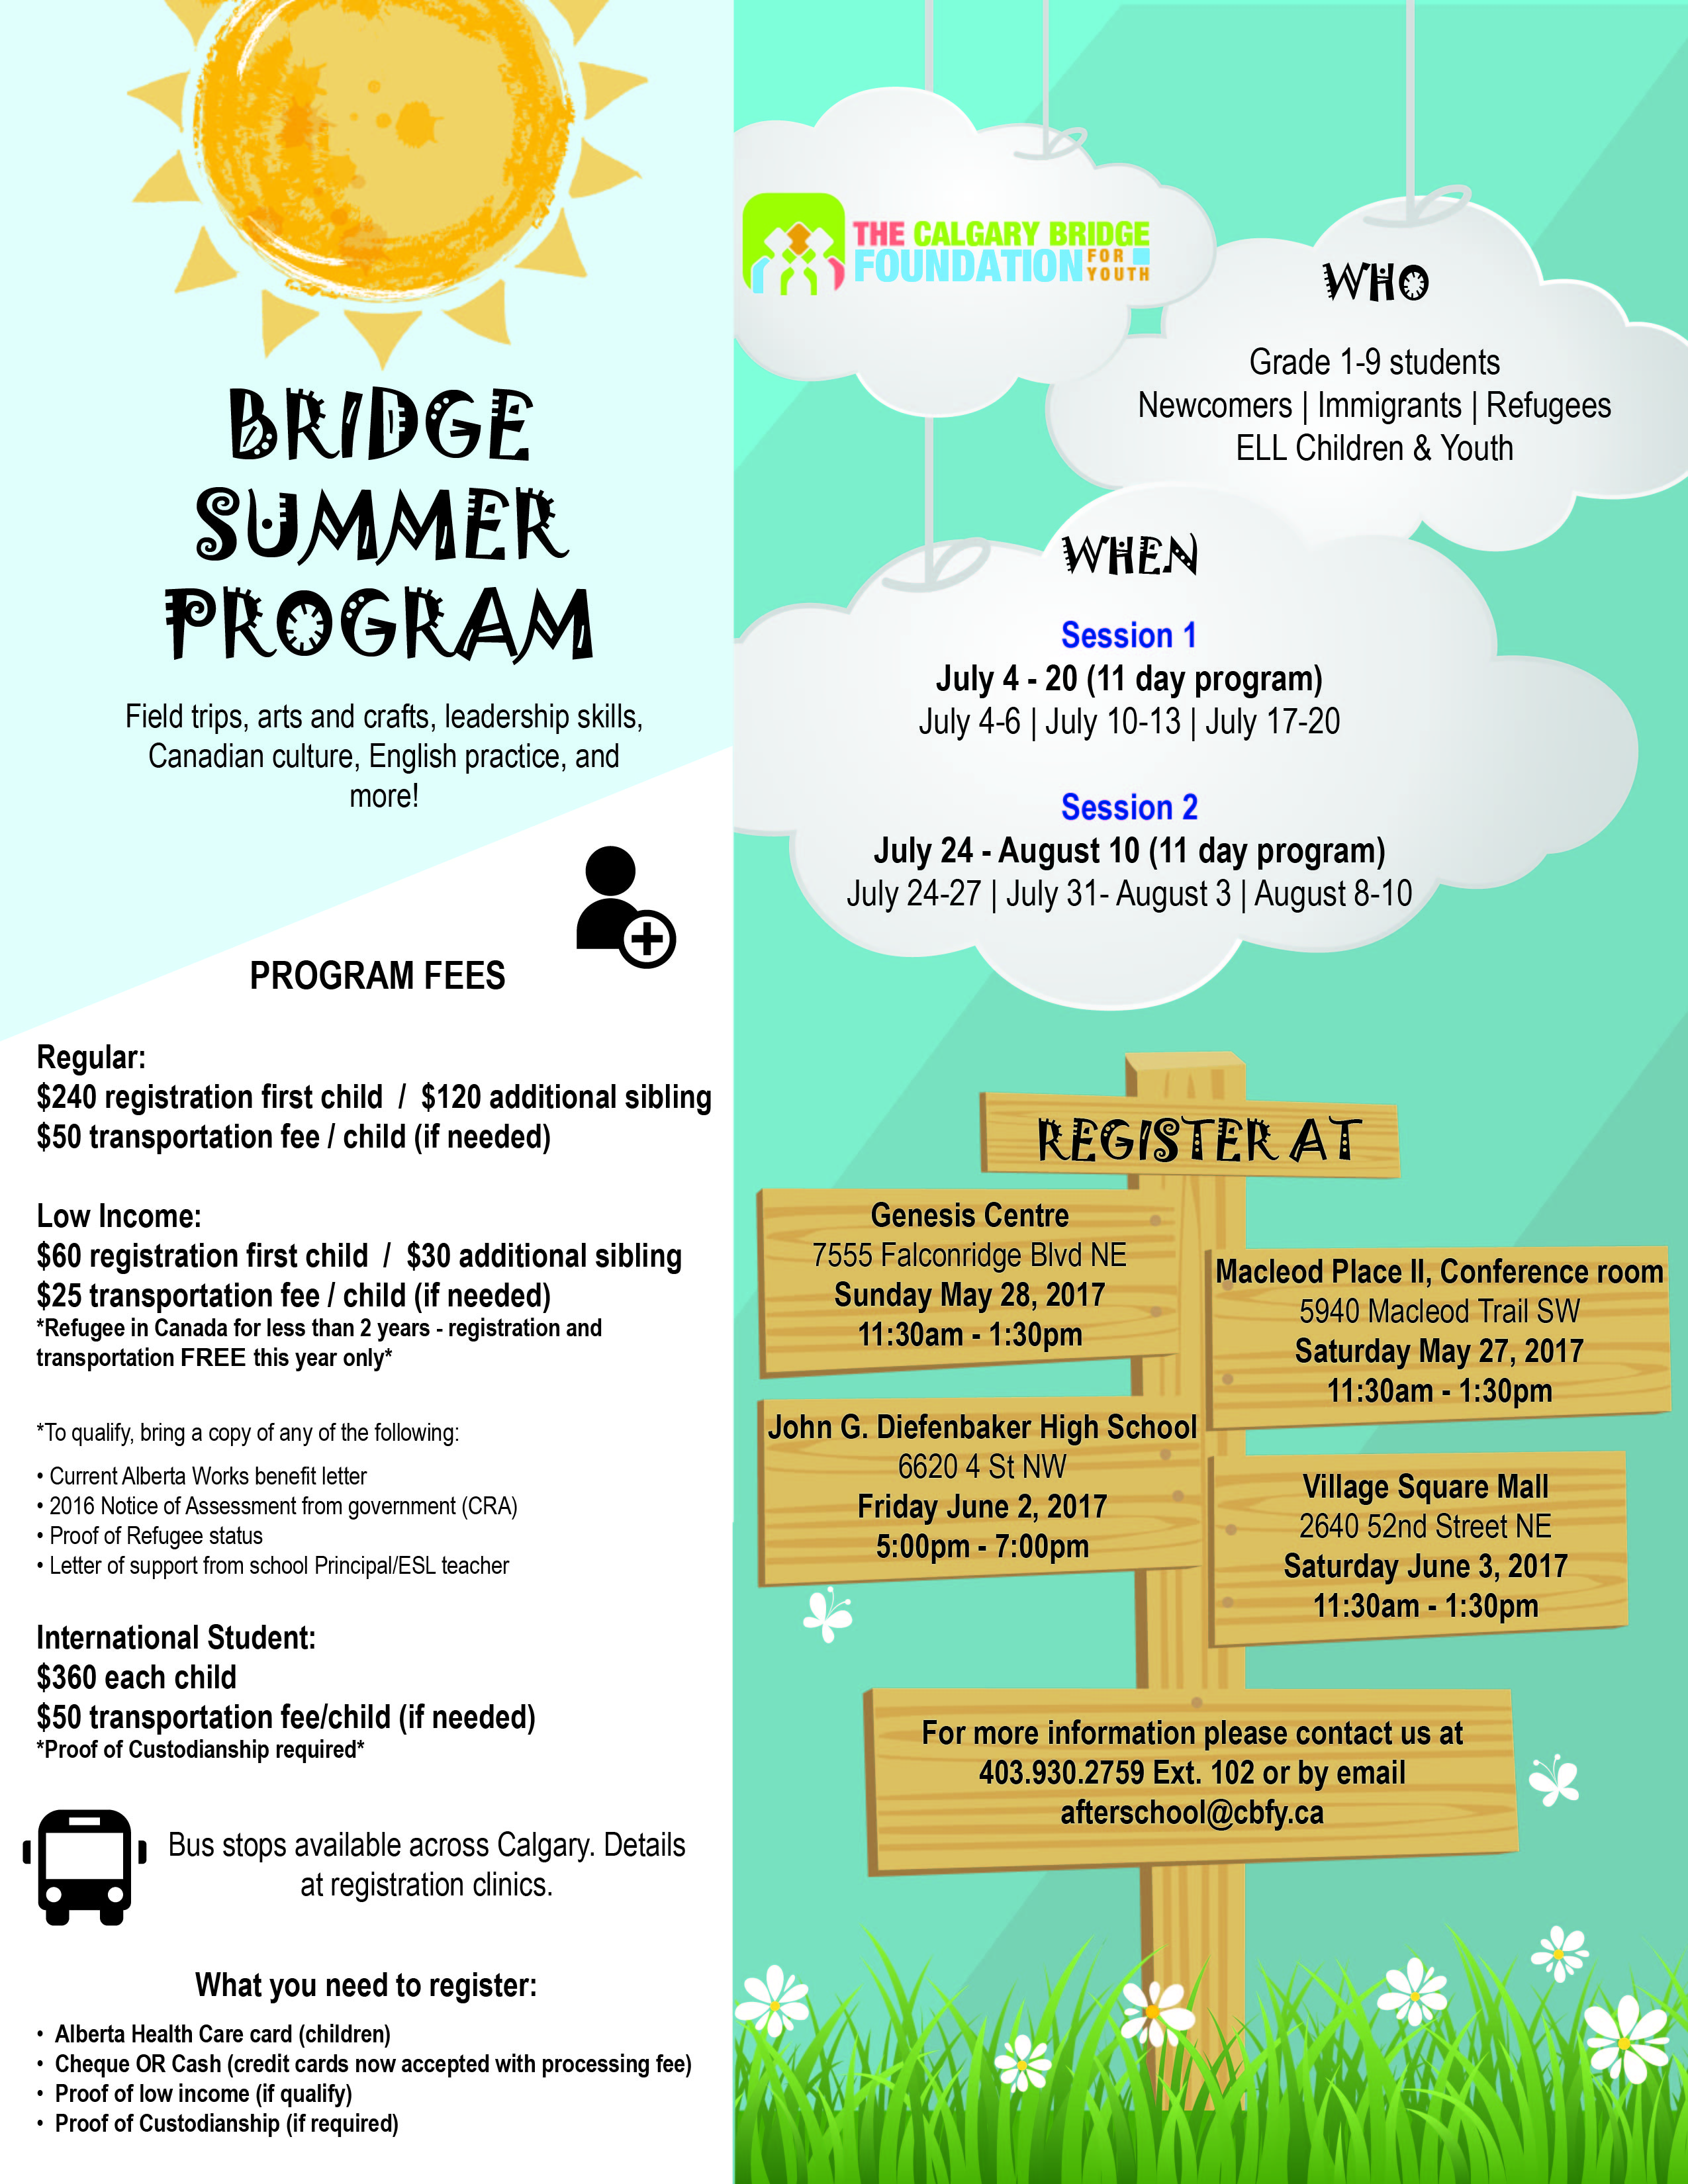 http://www.cbfy.ca/wp-content/uploads/2017/05/Bridge-Summer-Program-Poster-17_ver7.pdf